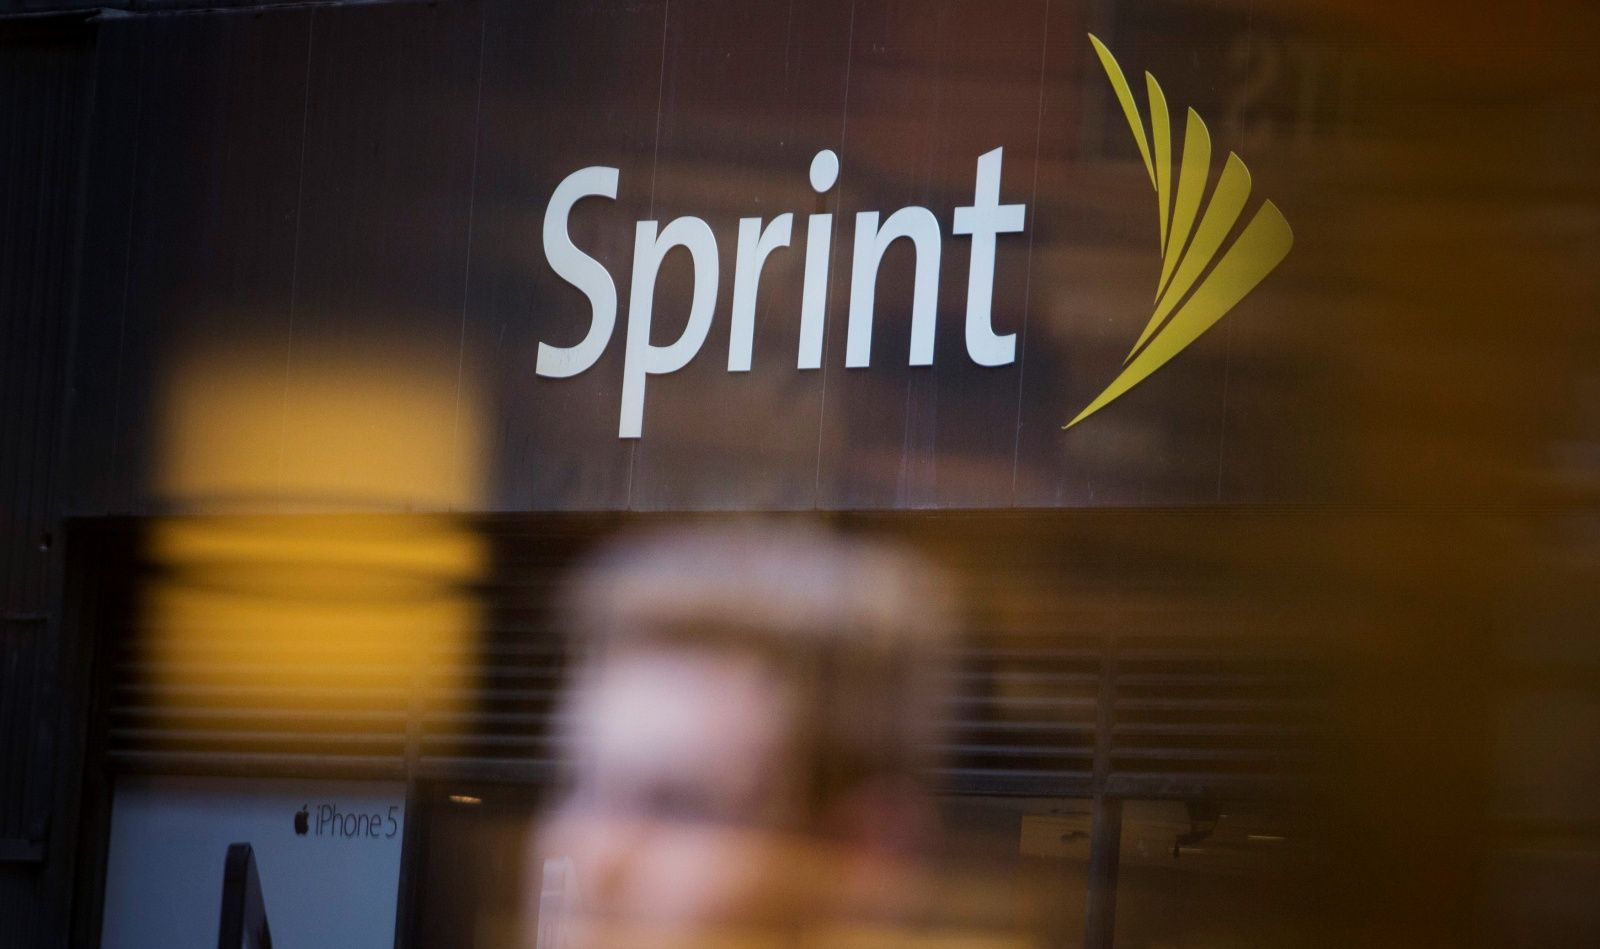 act-now-to-avoid-sprints-10-unlimited-data-price-jump-image-cultofandroidcomwp-contentuploads201402sprint-sign-jpg